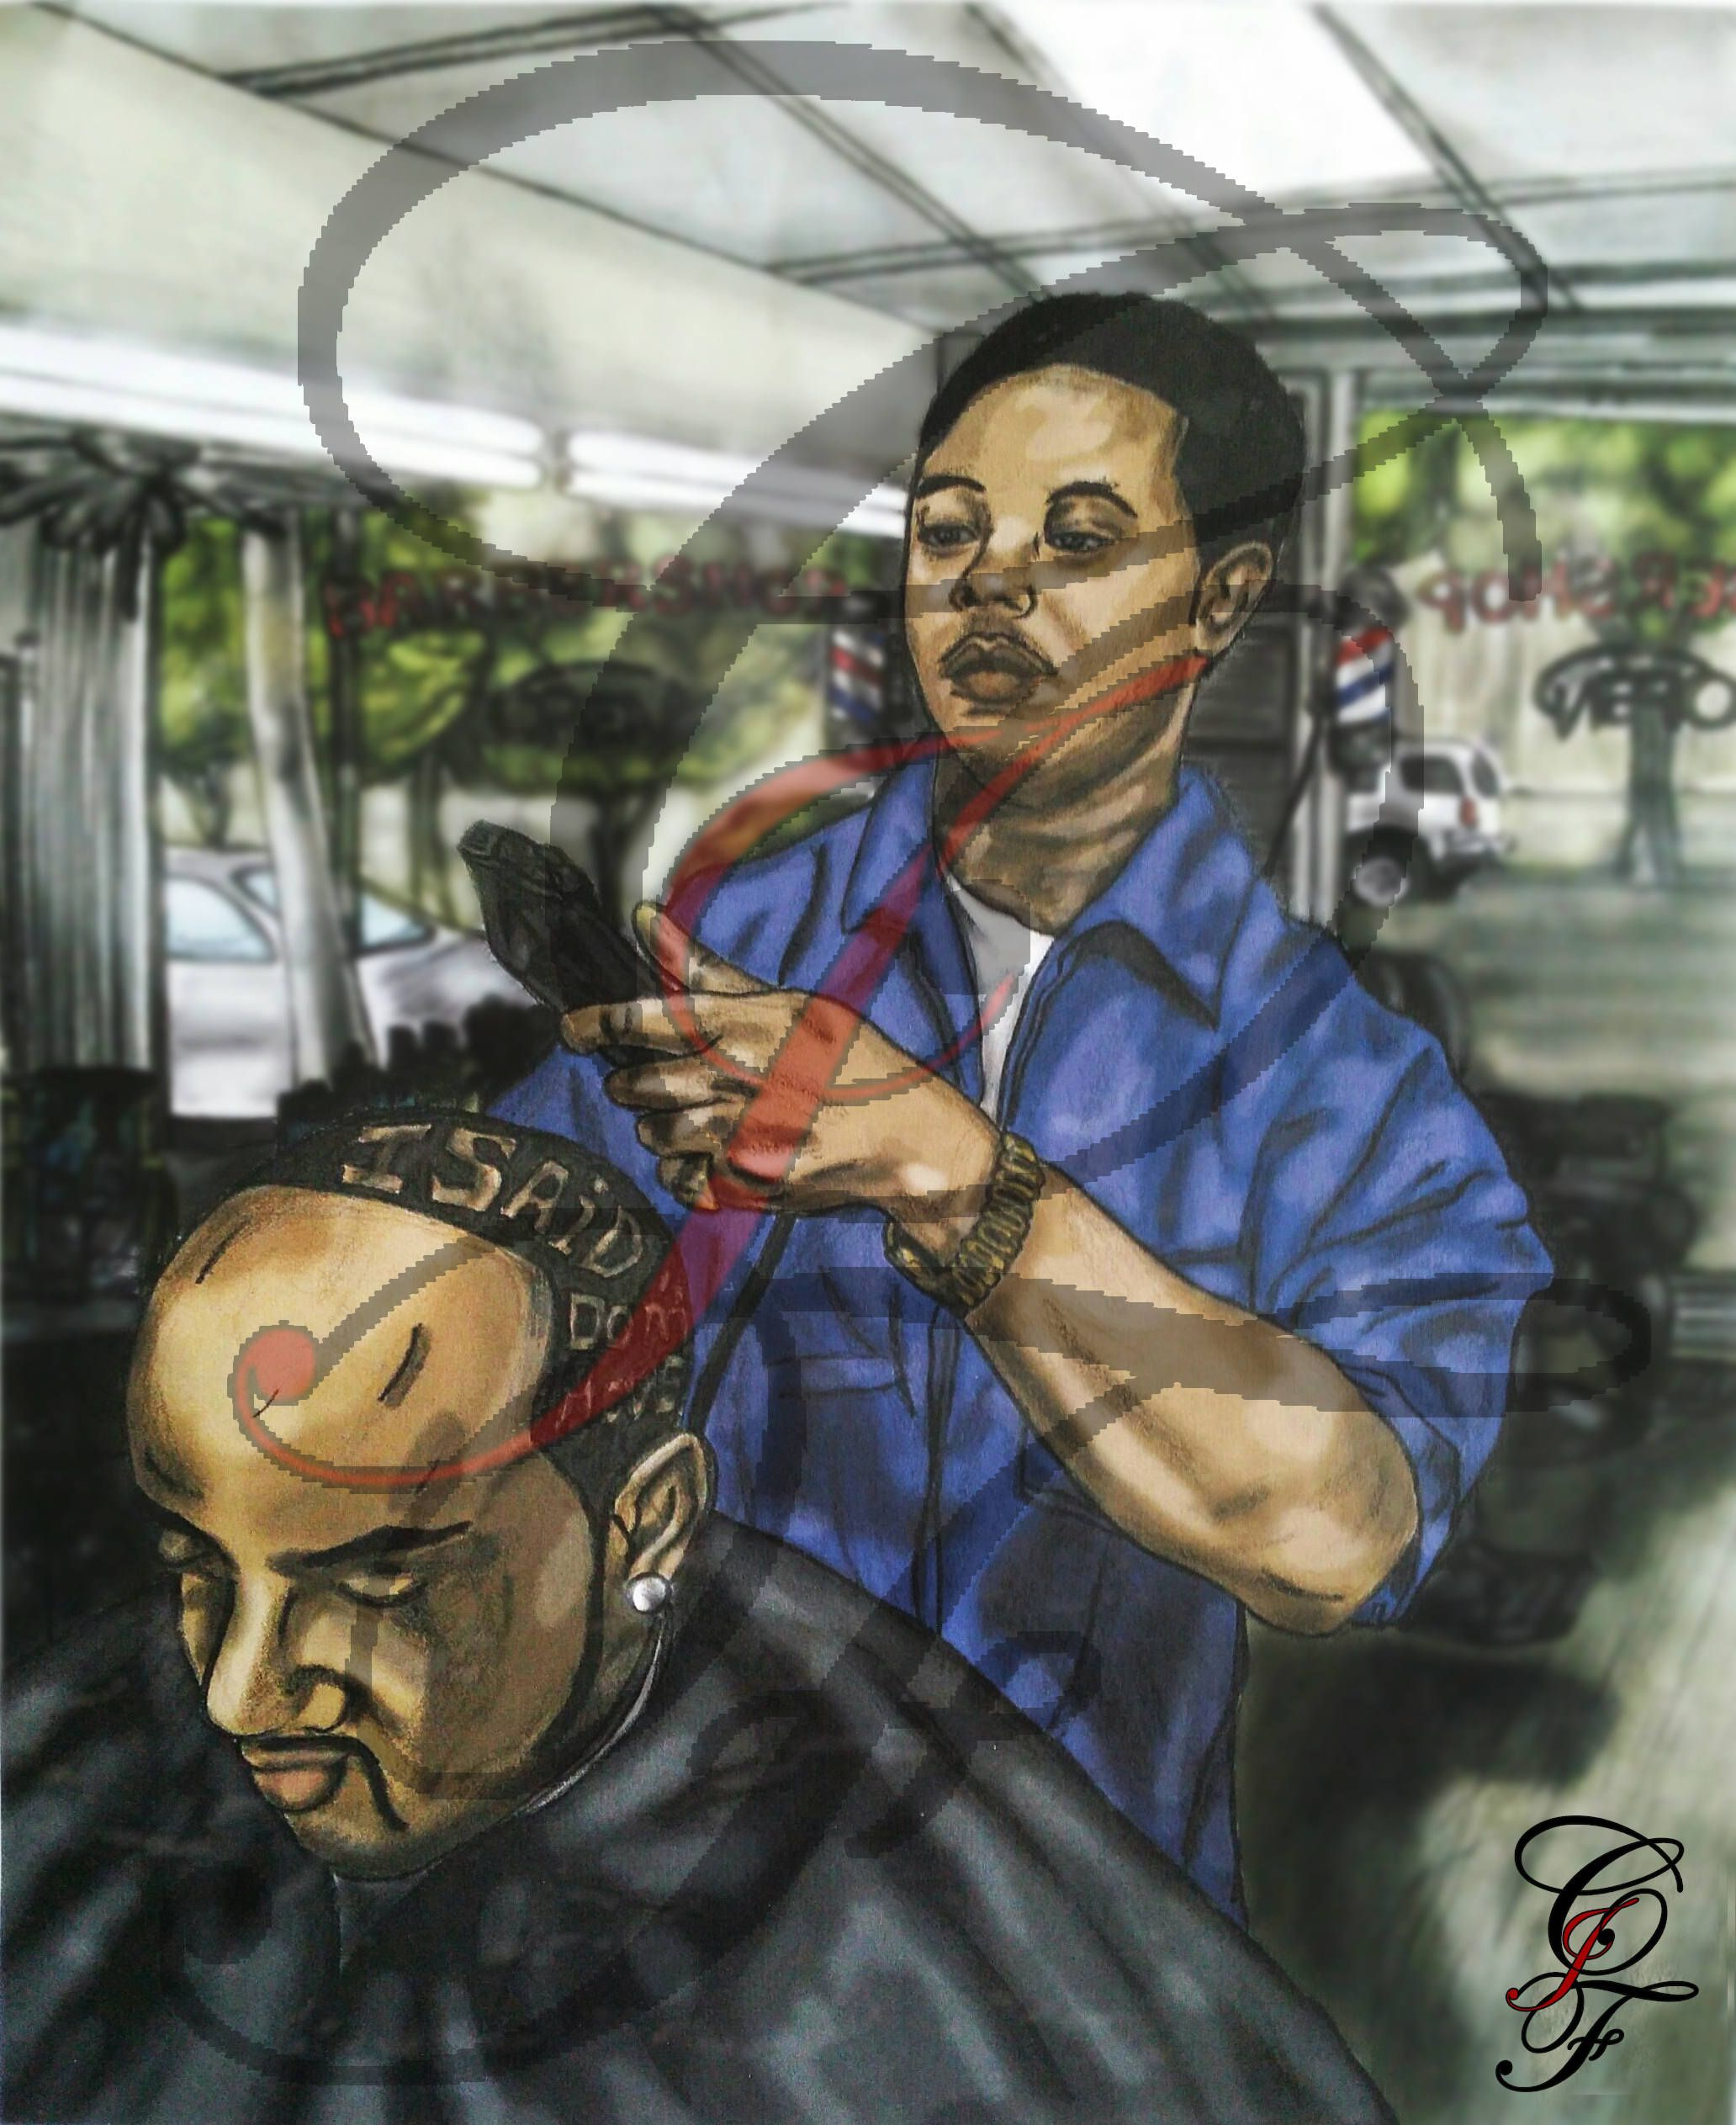 The Barbershop Digital Painting by CJFUniqueDesigns on Etsy